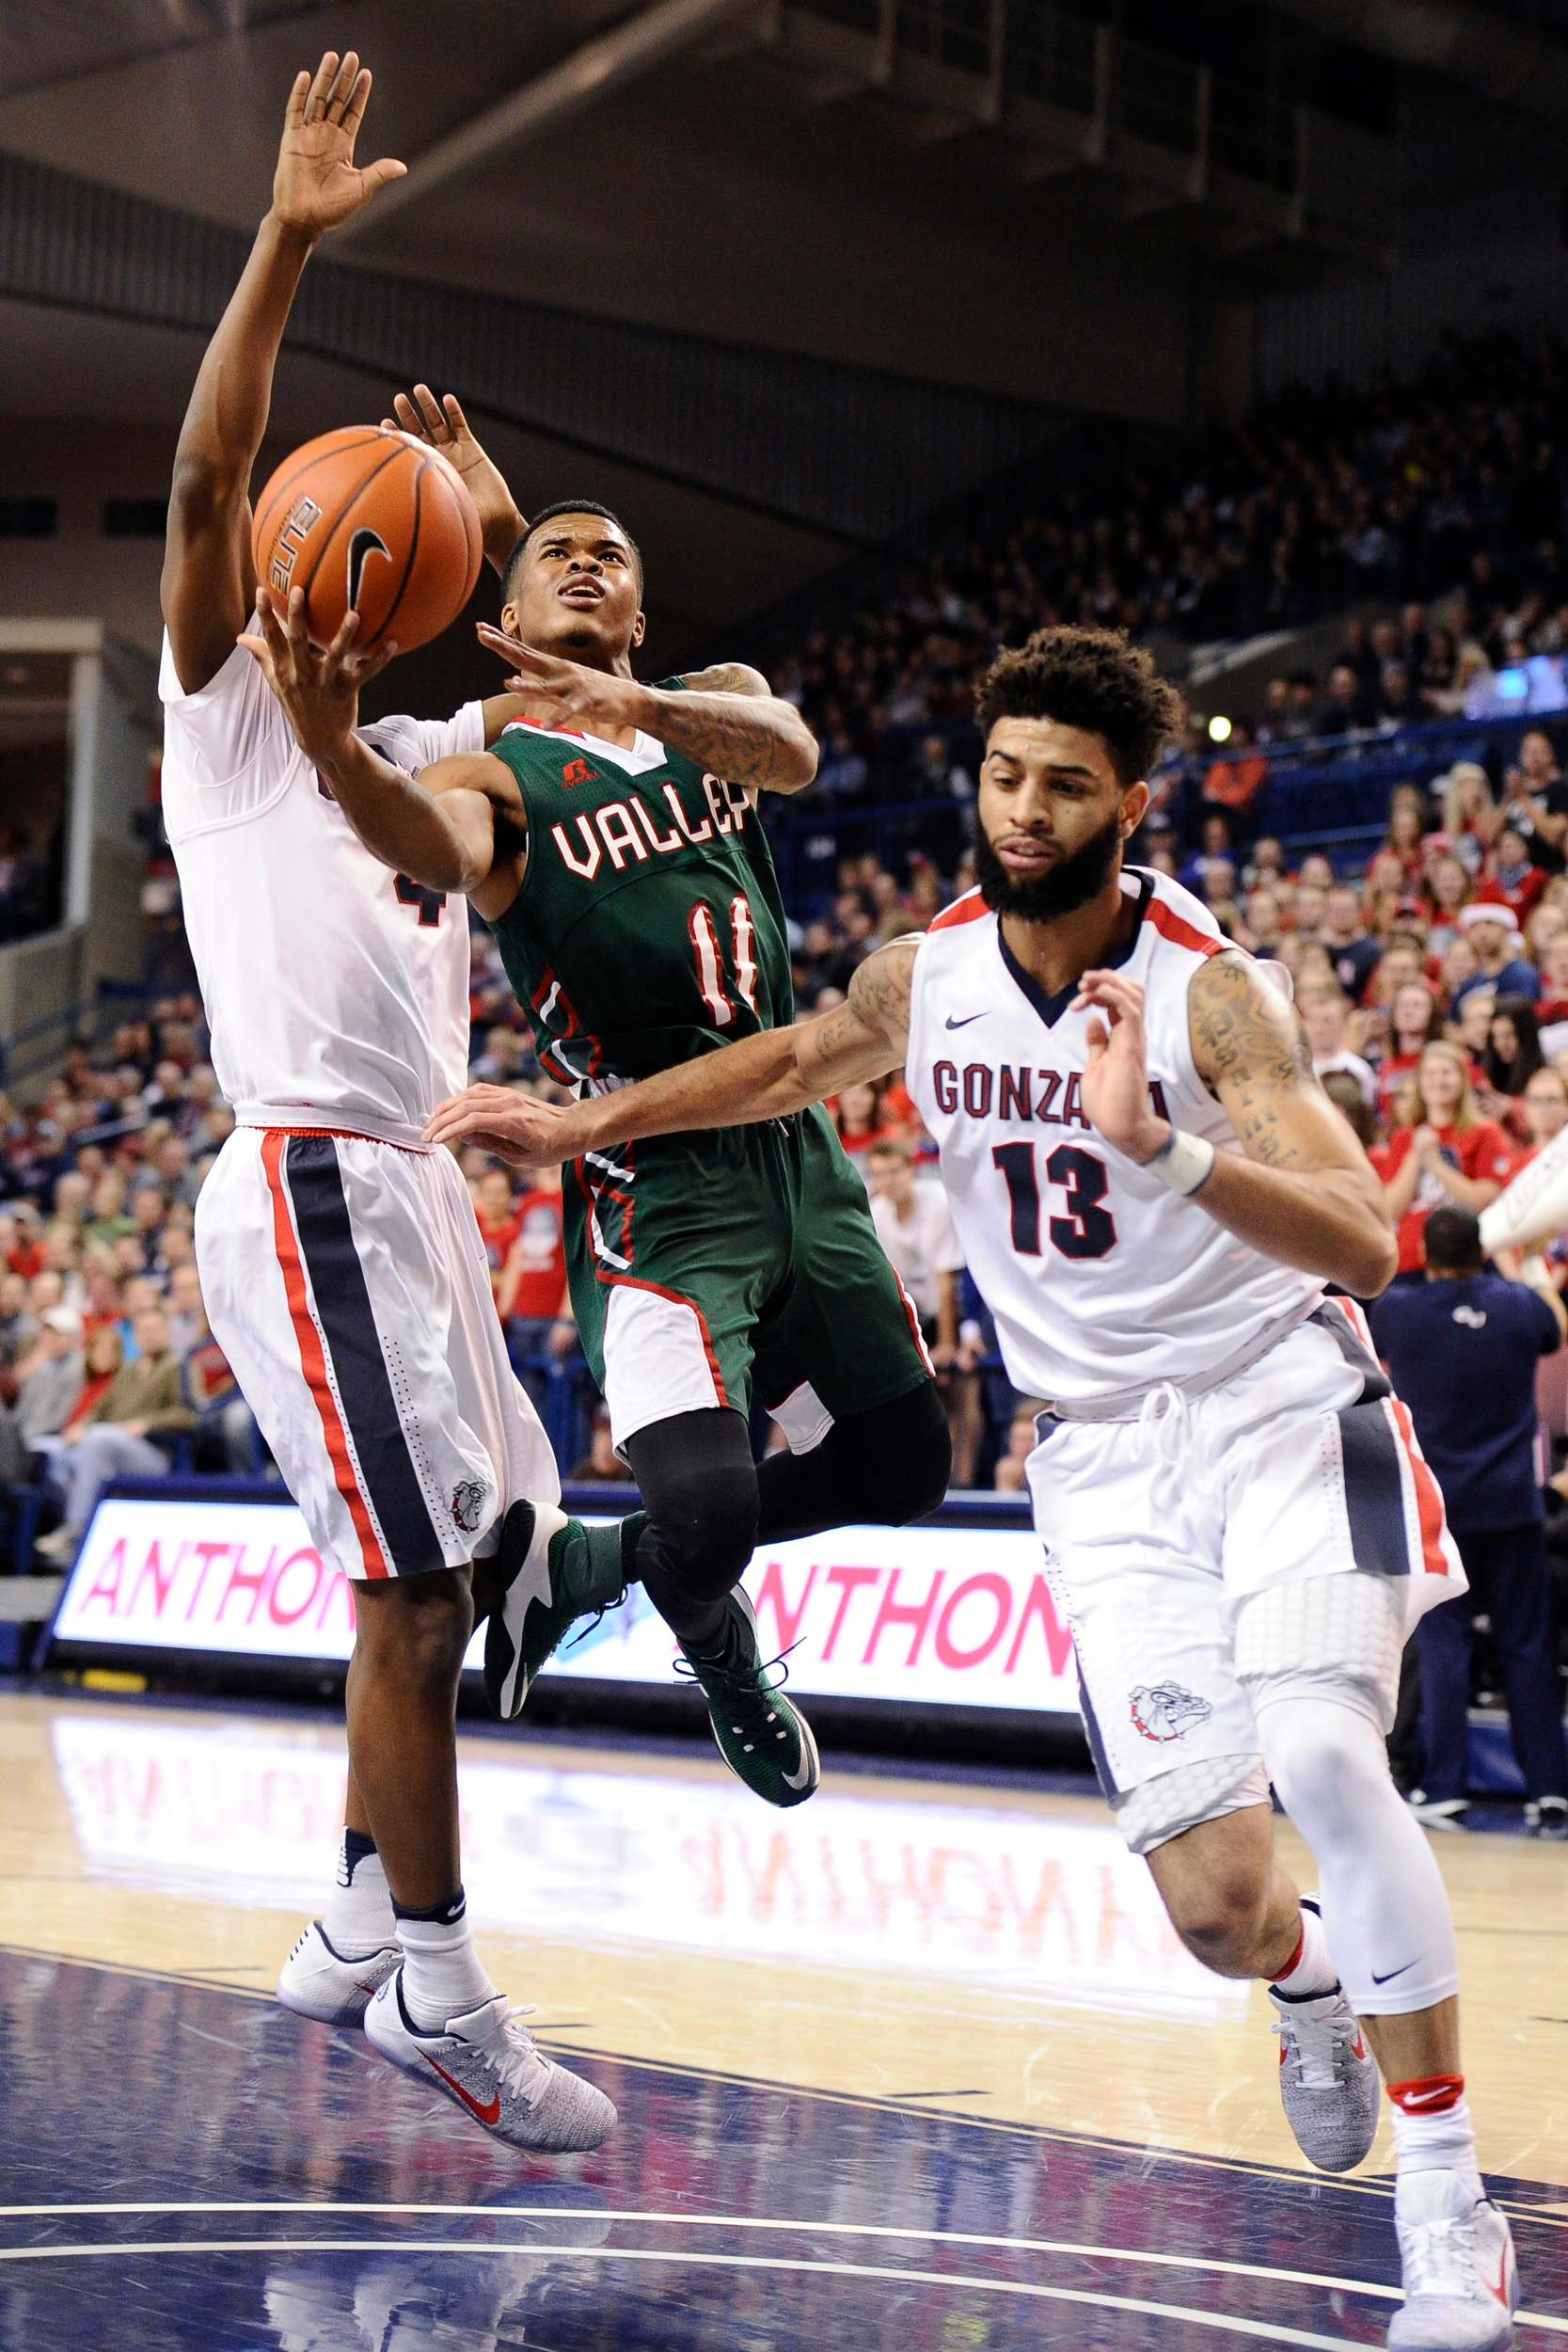 Mississippi Valley State Delta Devils guard Kylan Phillips (11) goes up for a basket against Gonzaga Bulldogs guard Josh Perkins (13) during the first half at McCarthey Athletic Center.